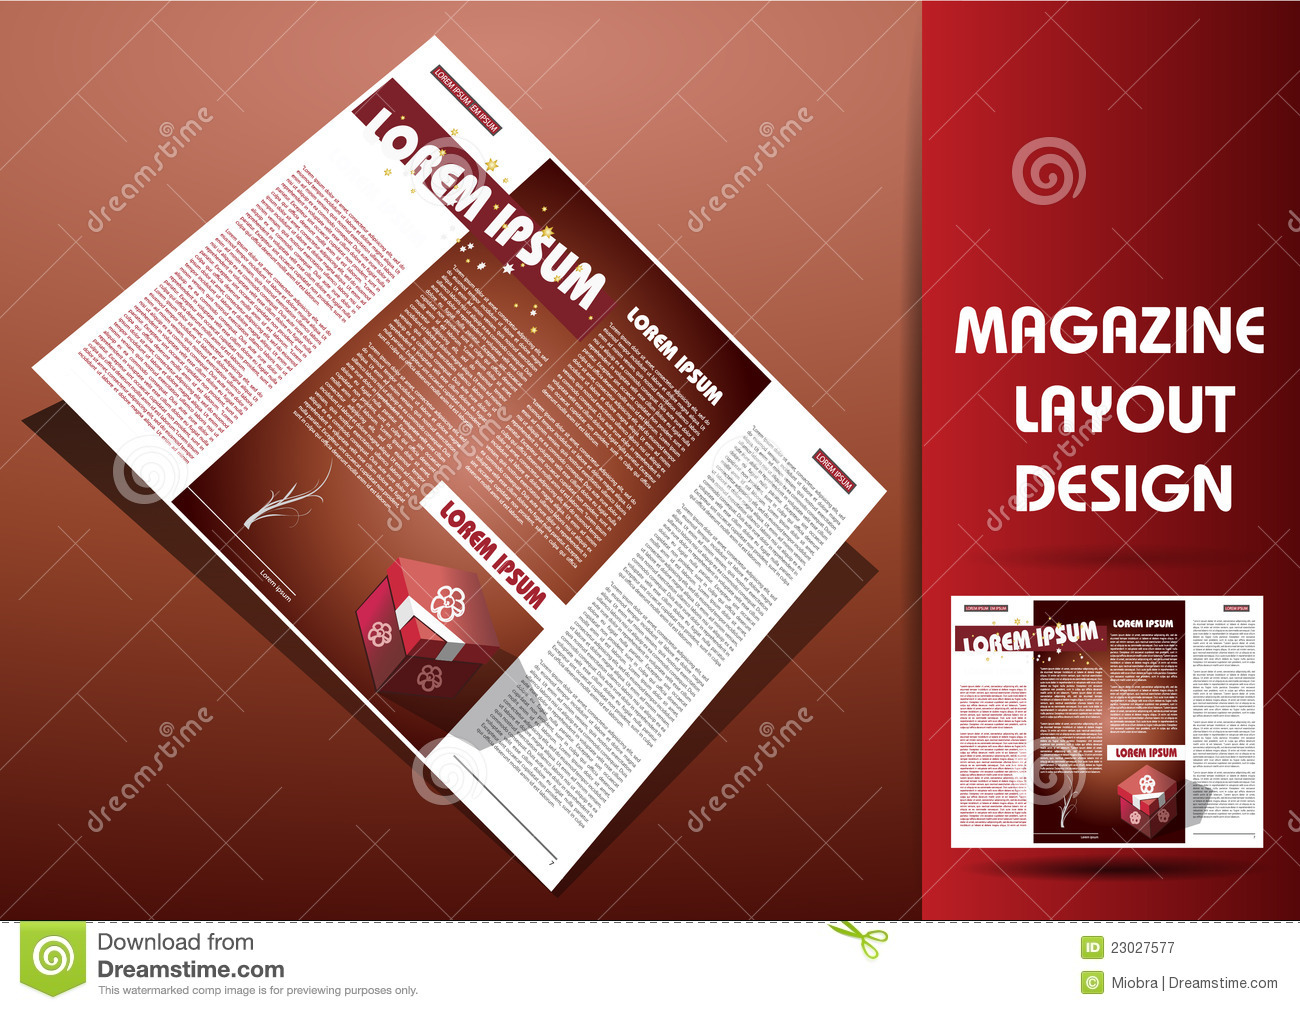 Magazine Illustration Design Layout Royalty Free Stock Photography ...